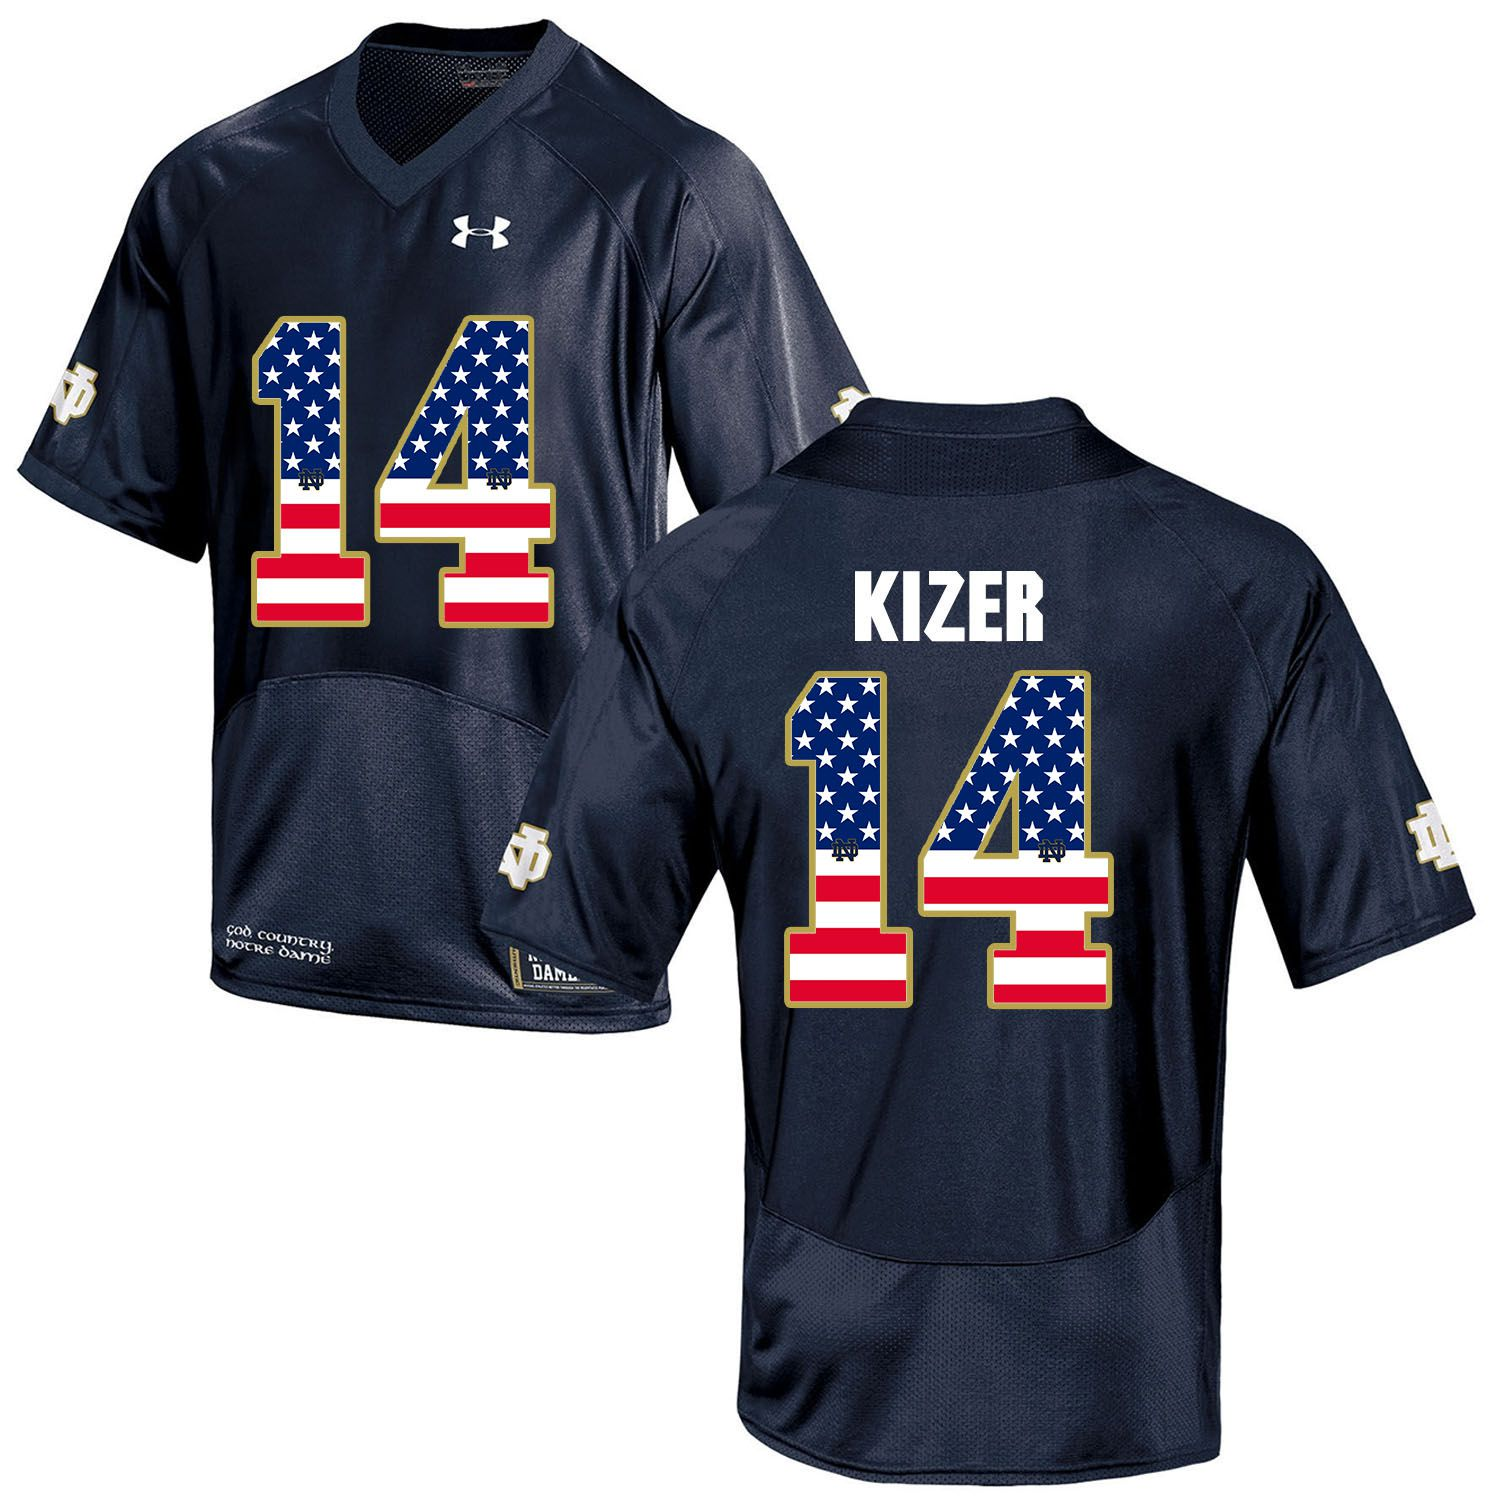 Men Norte Dame Fighting Irish 14 Kizer Navy Blue Flag Customized NCAA Jerseys